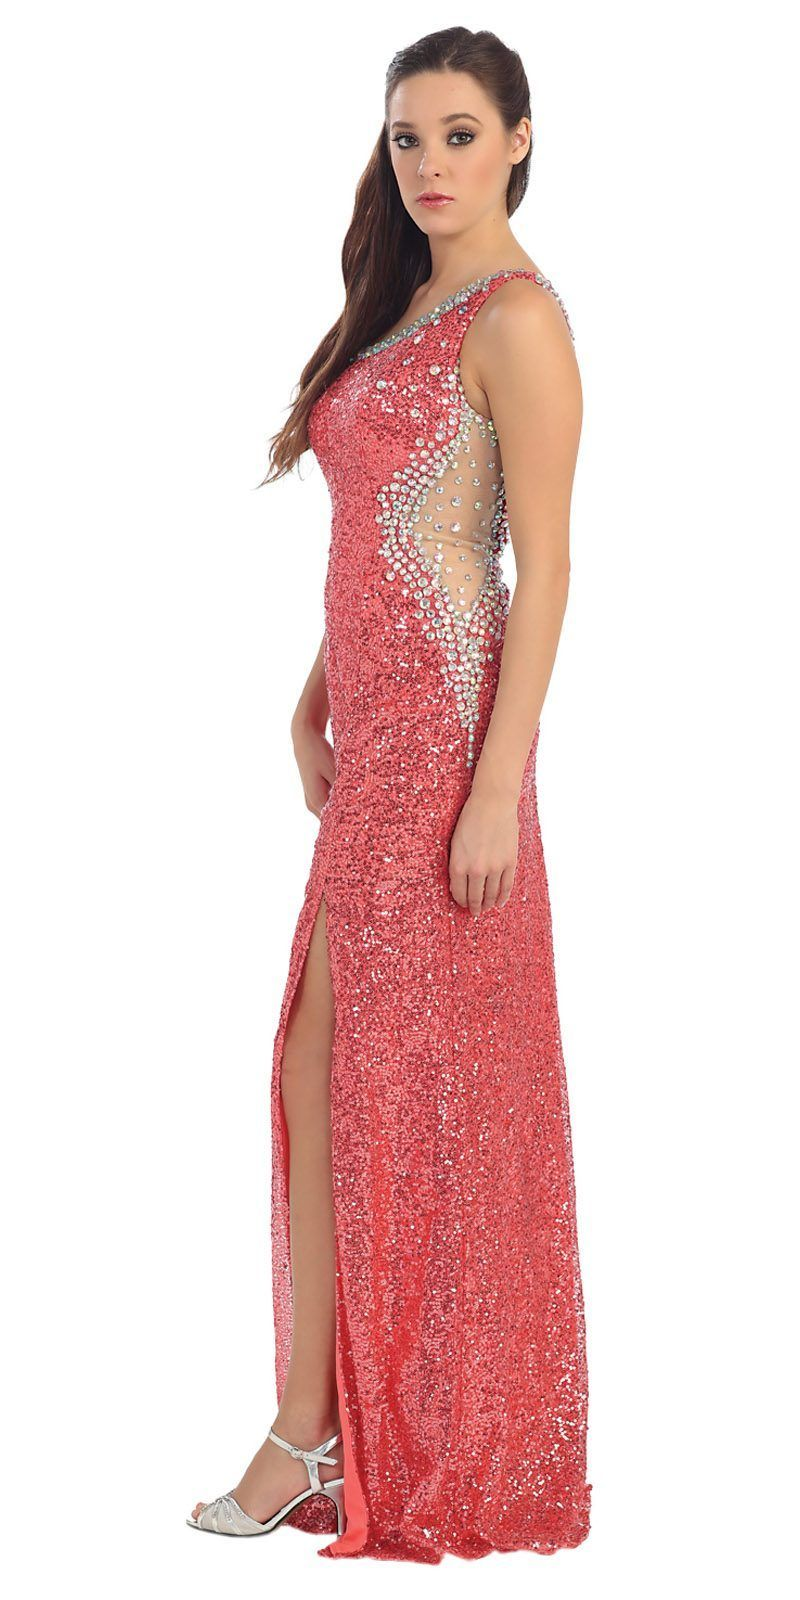 Clearance floor length coral sequins dress sexy see through side